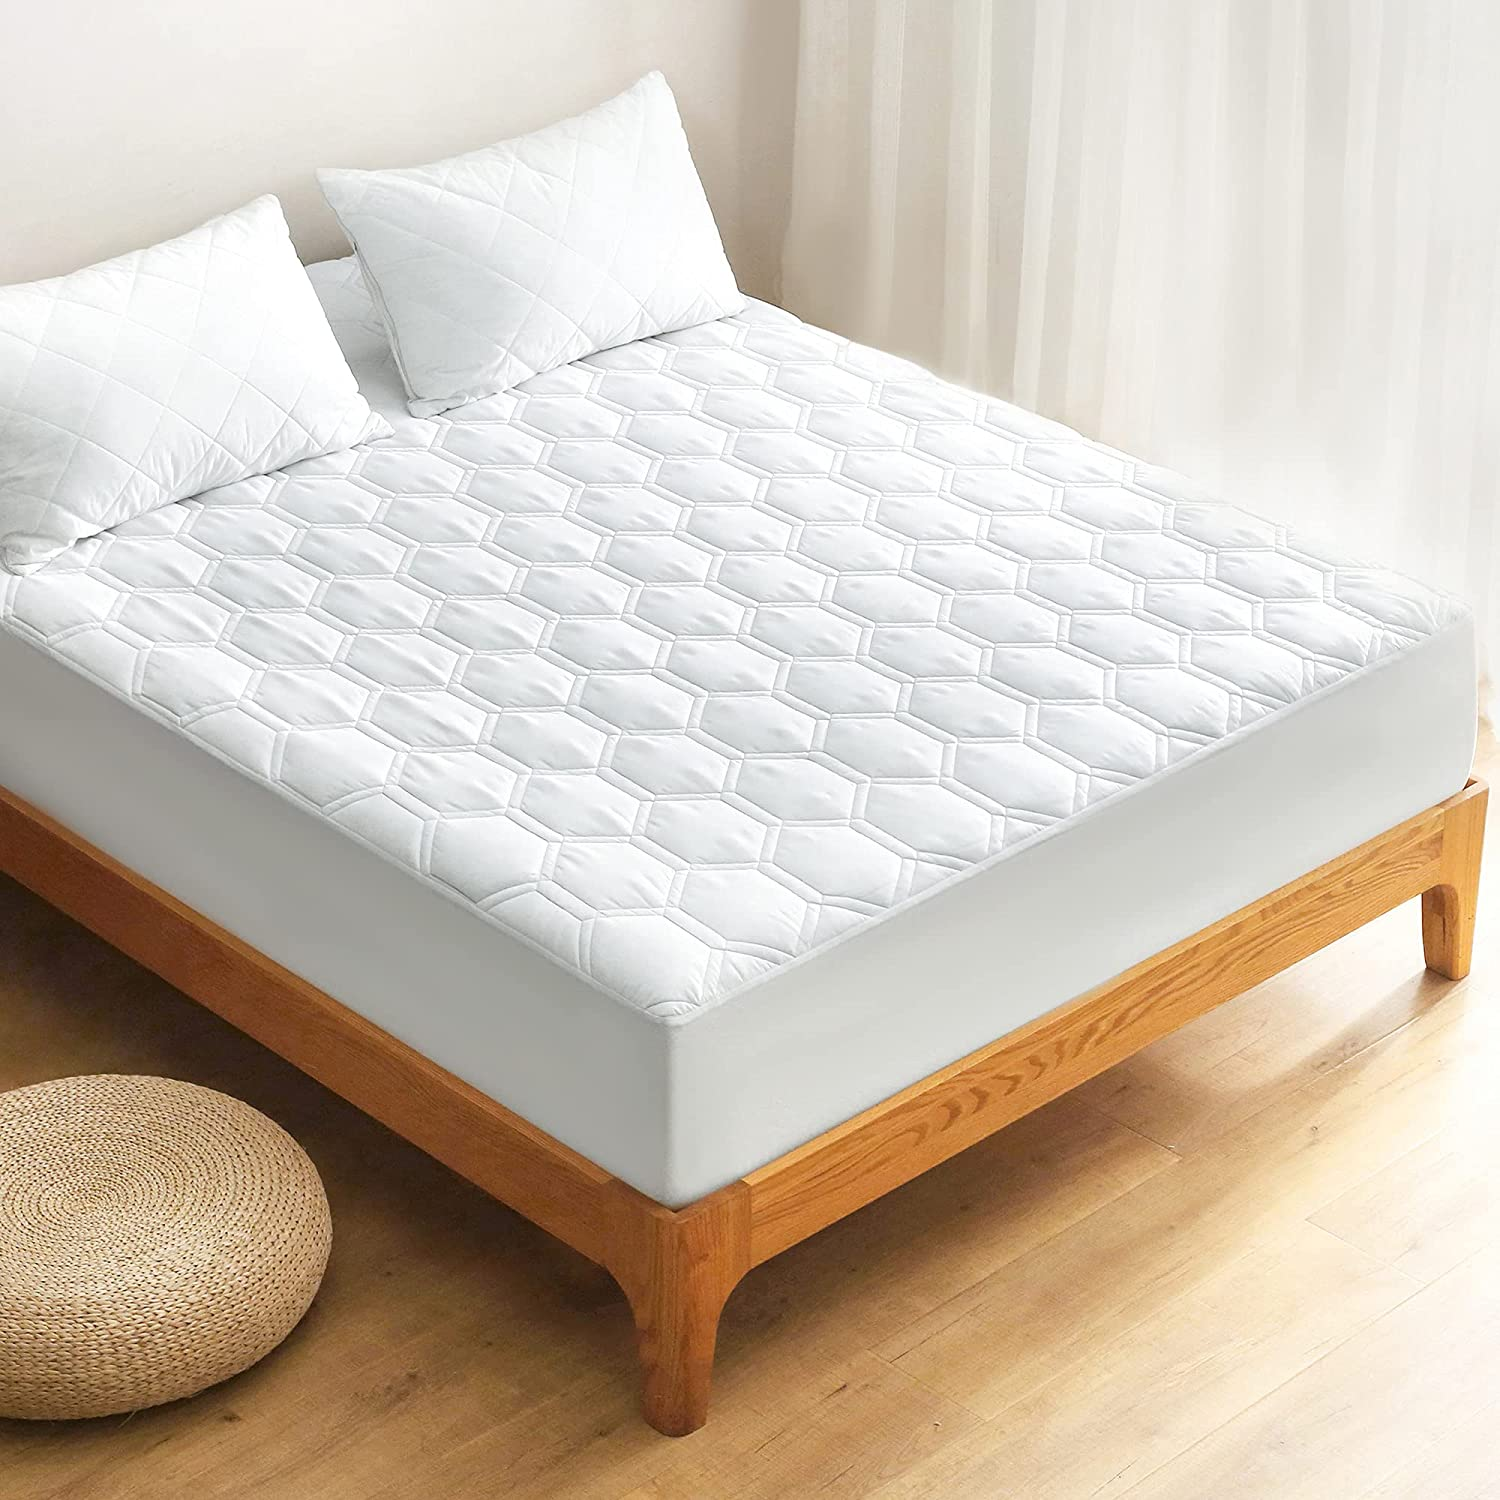 Waterproof Sales for sale Mattress Pad Memphis Mall King Mattr Bed Breathable Size